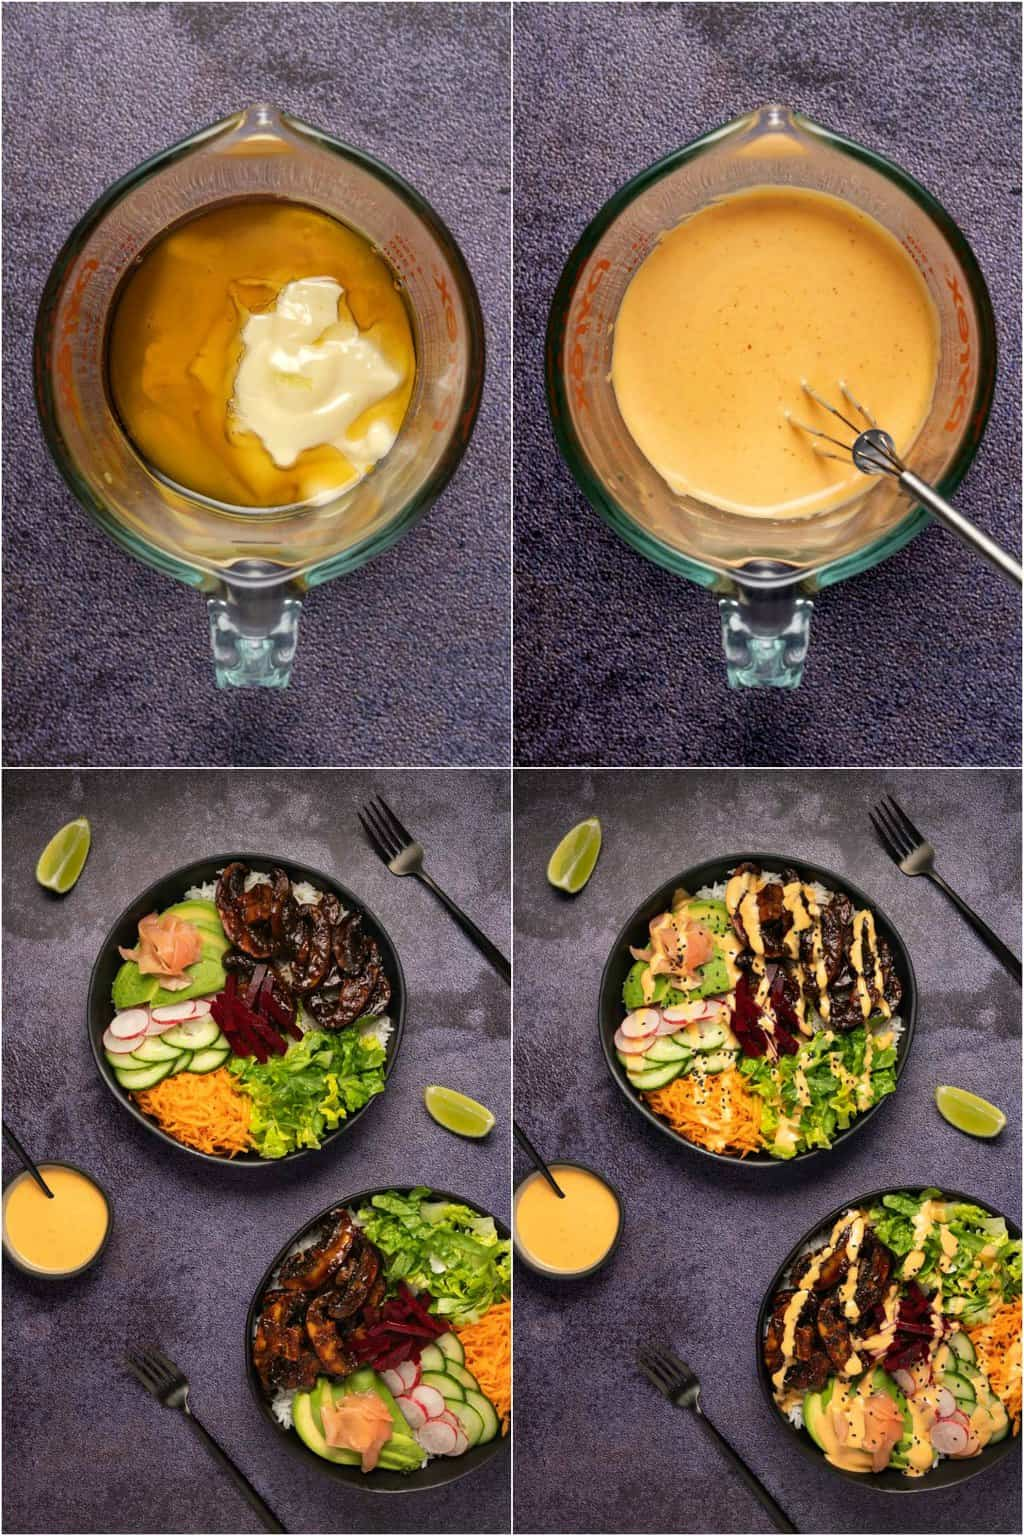 Step by step photo collage of assembling vegan poke bowls.